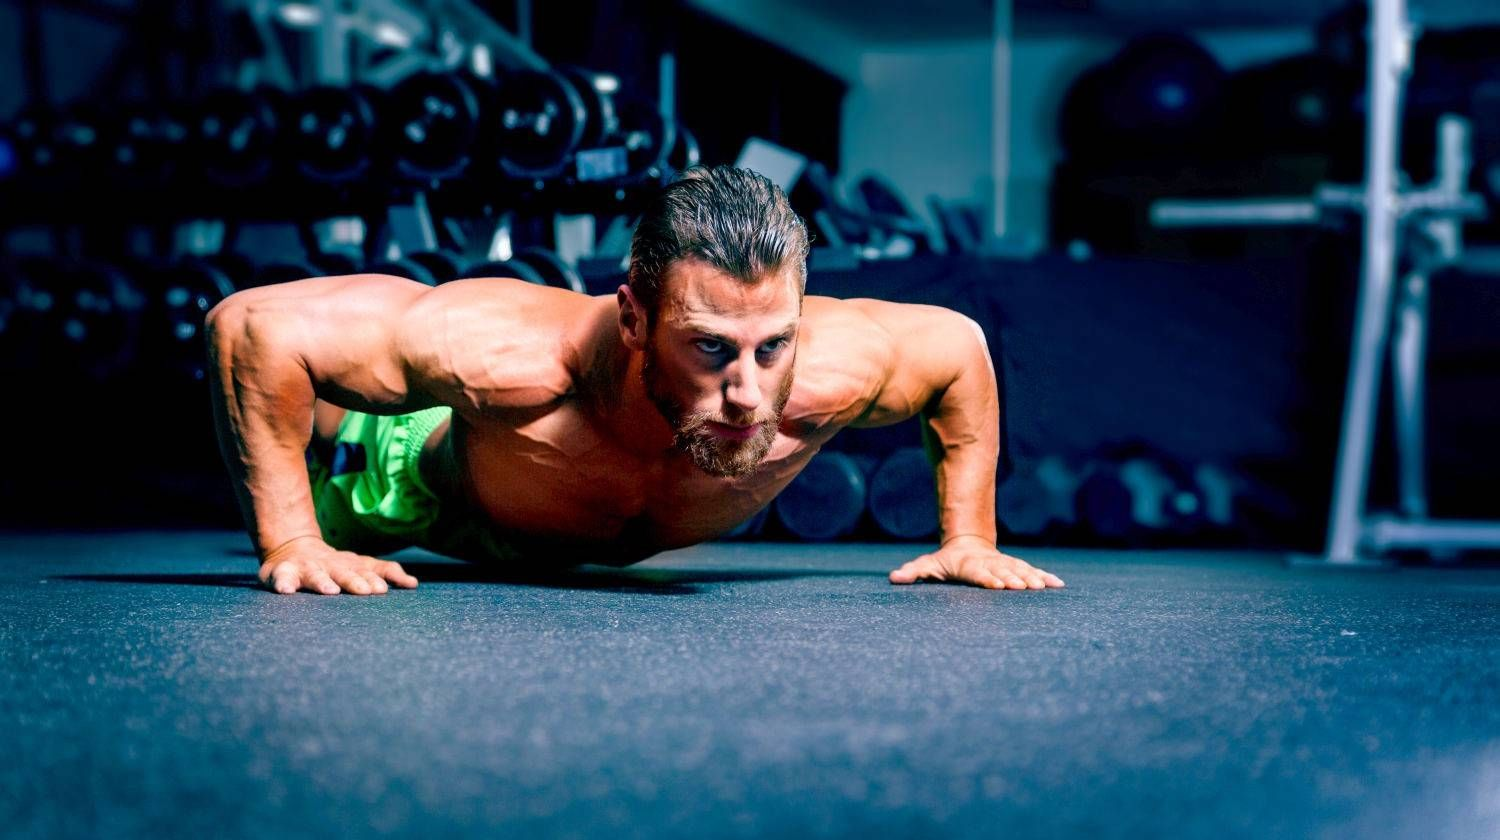 The Best Super HighRep Training With HIIT 100s Workout